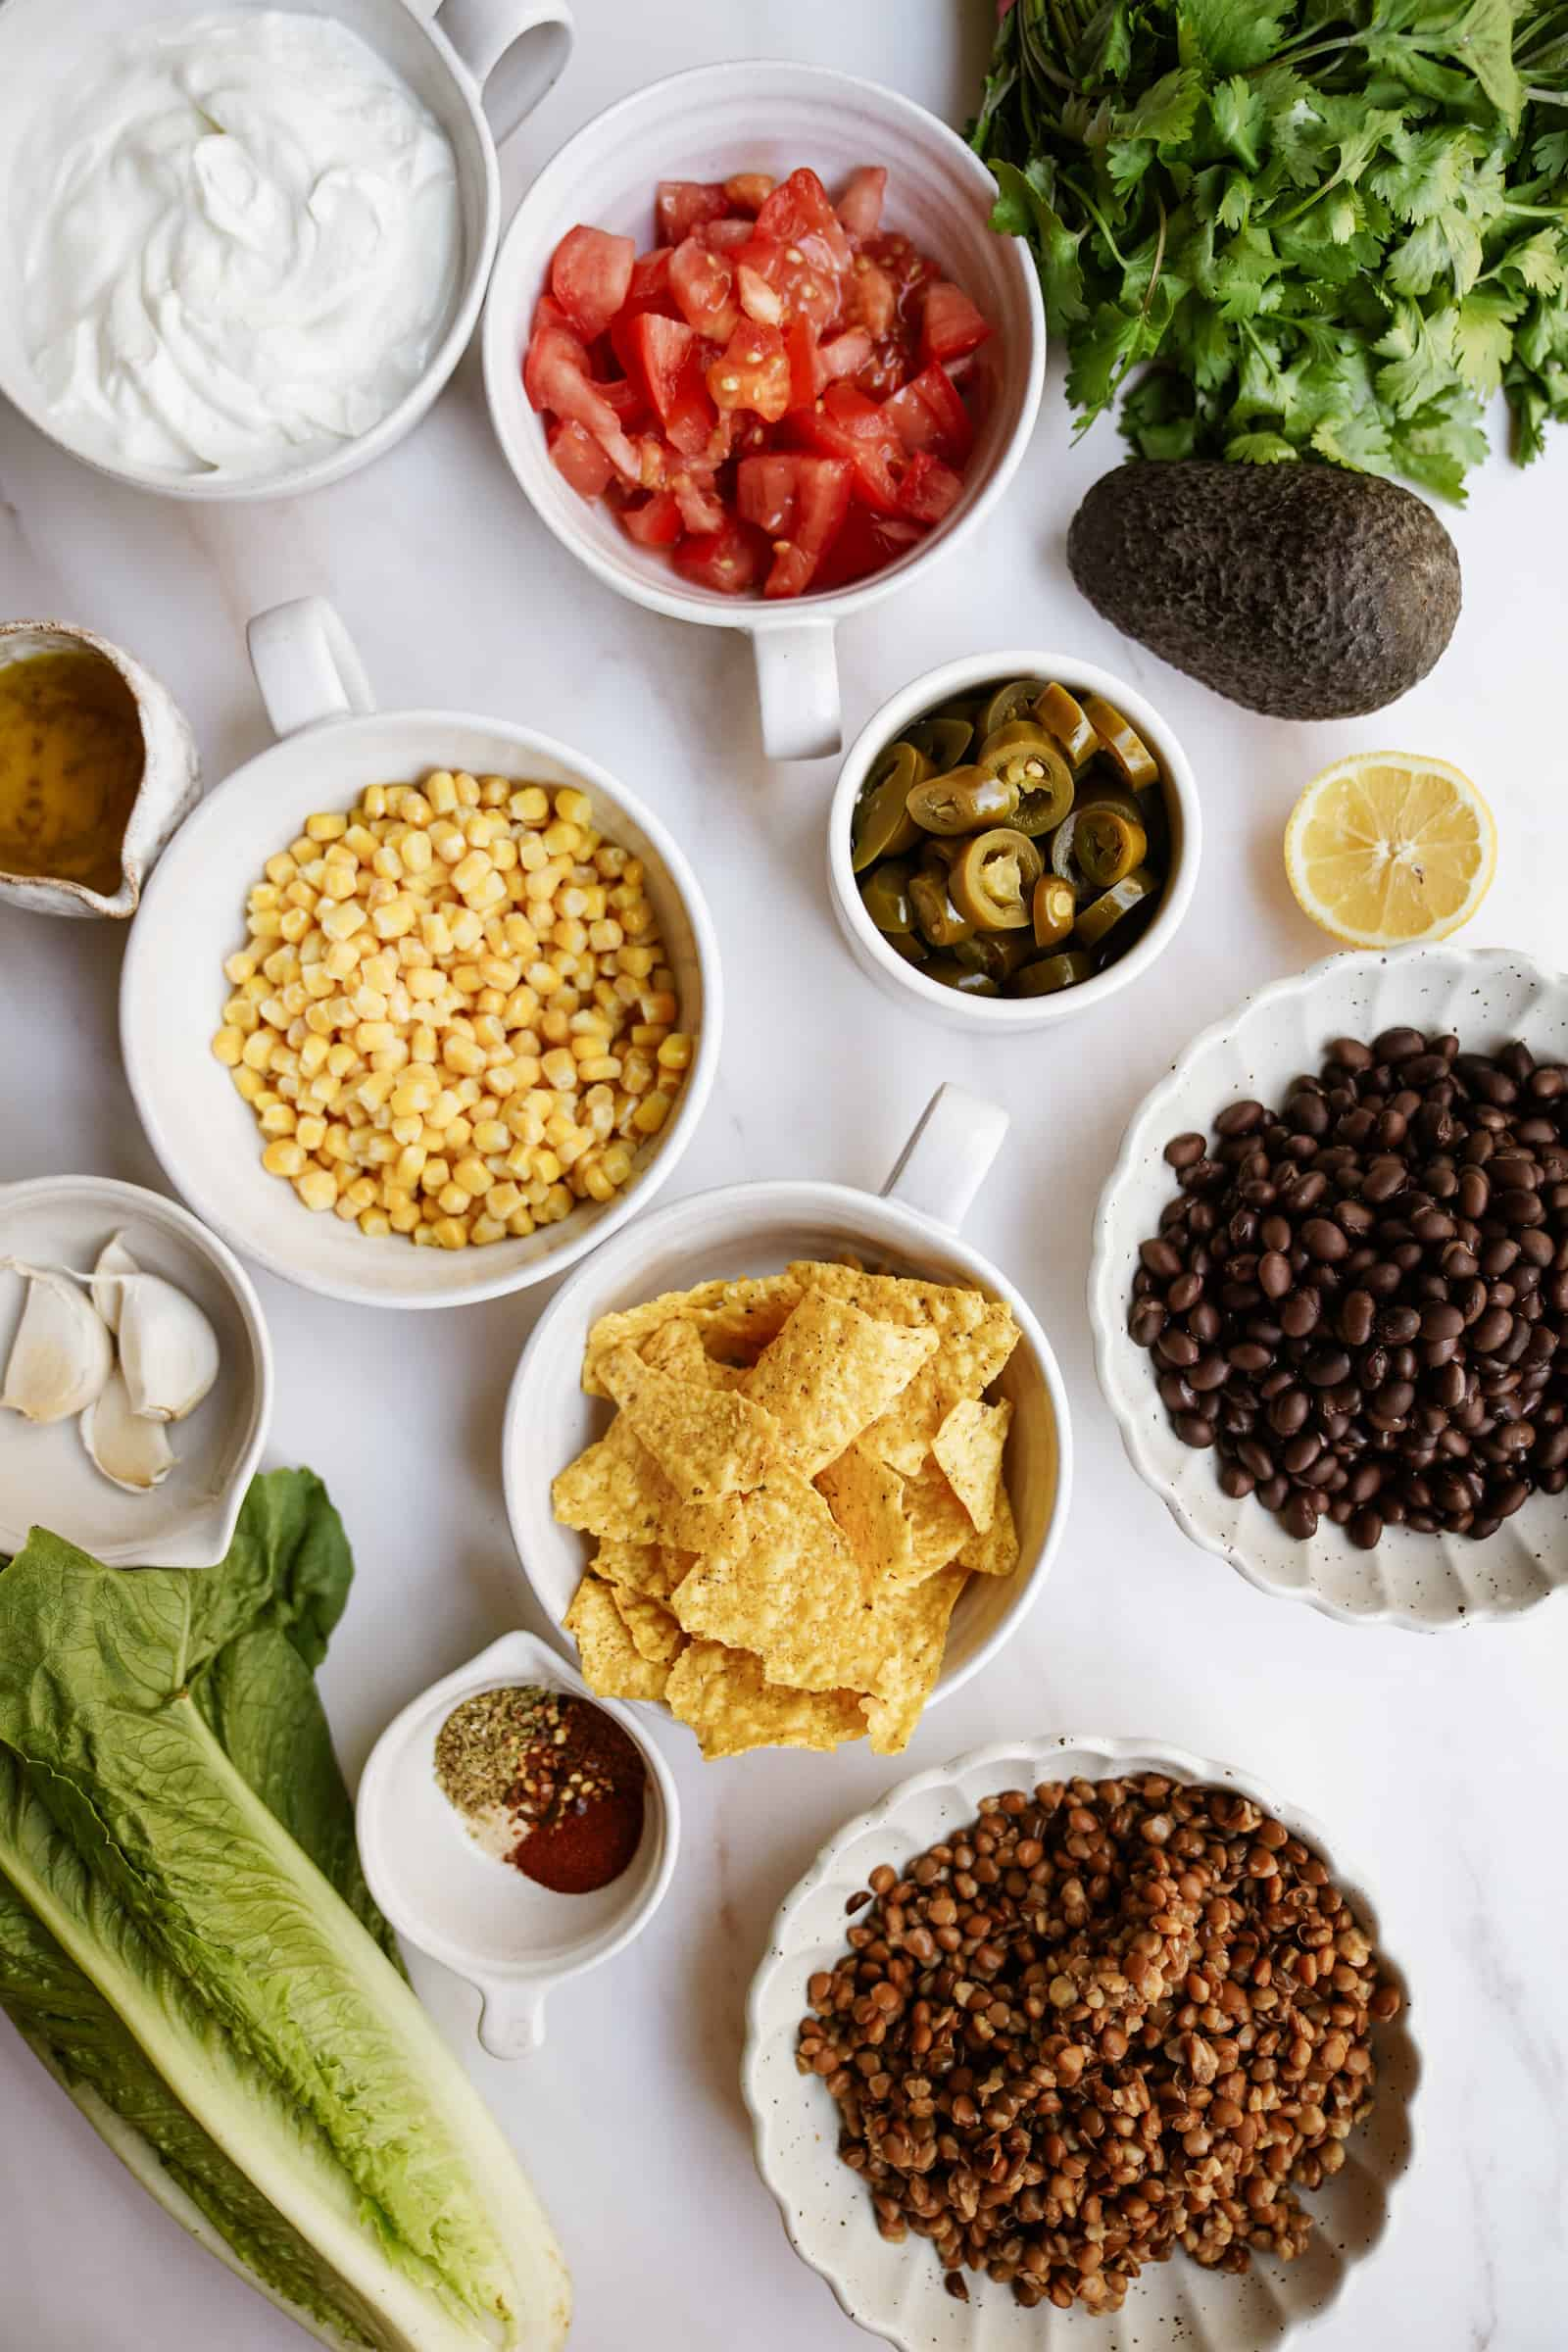 Ingredients for vegan taco salad on a table